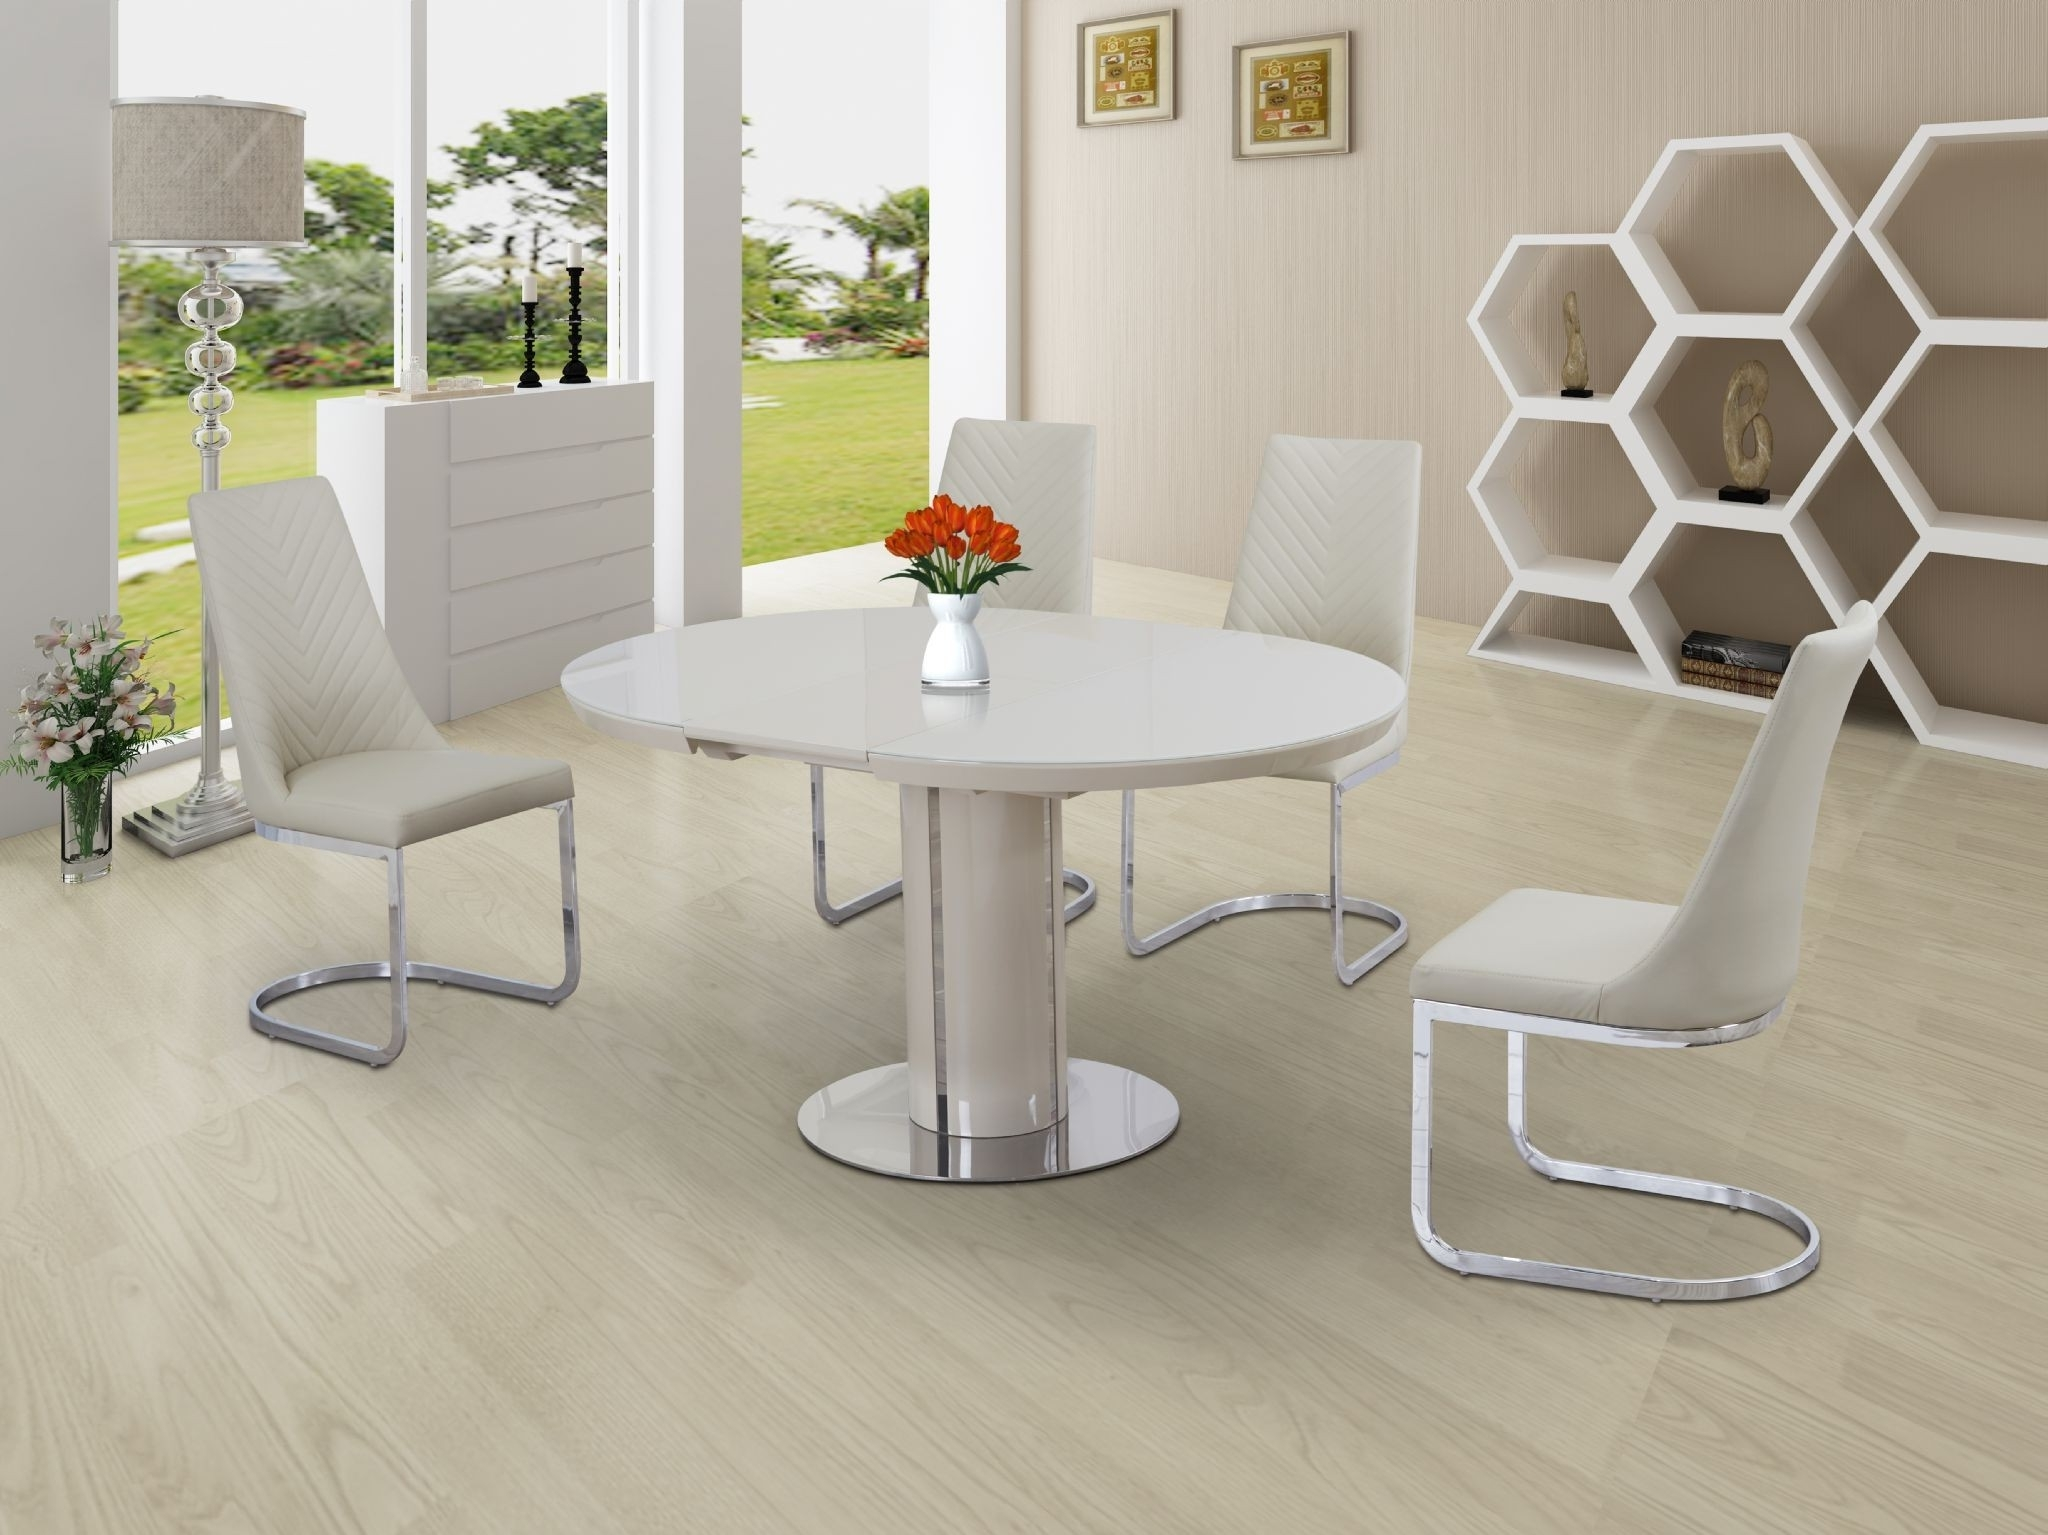 Buy Annular Cream High Gloss Extending Dining Table Intended For Trendy Circular Extending Dining Tables And Chairs (View 5 of 25)